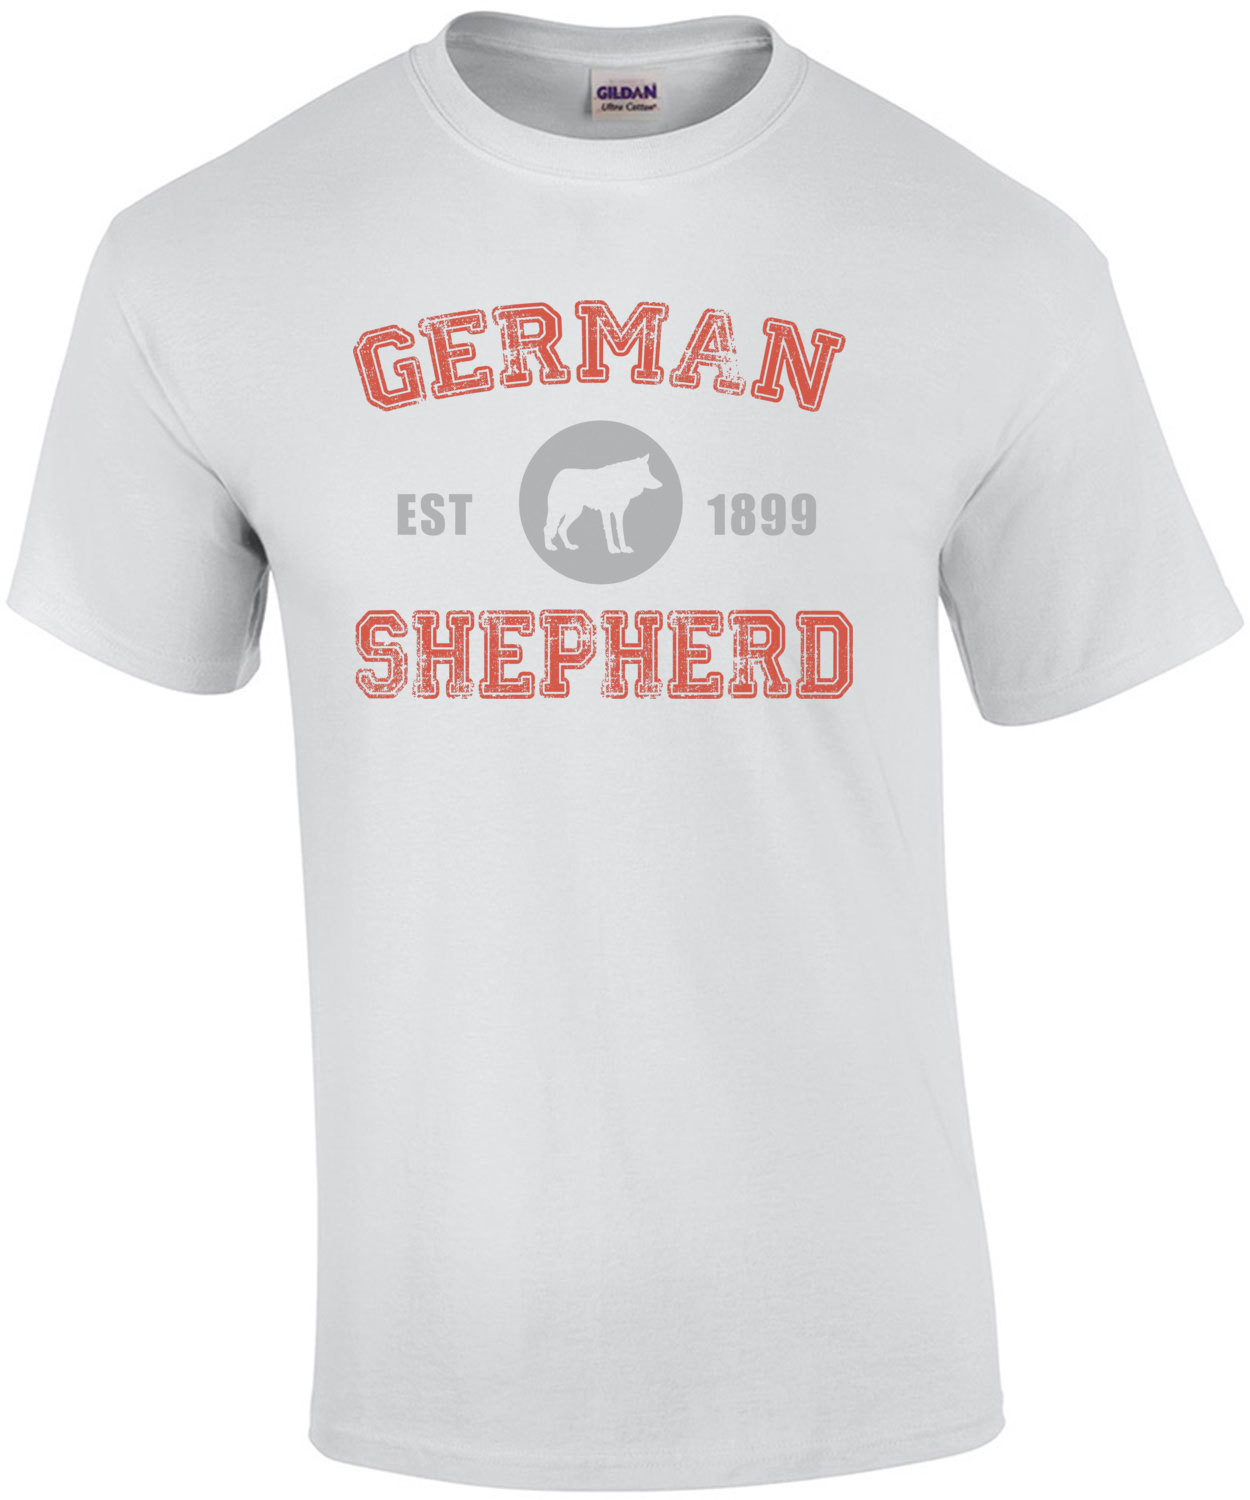 German Shepherd Est 1899 - German Shepherd T-Shirt